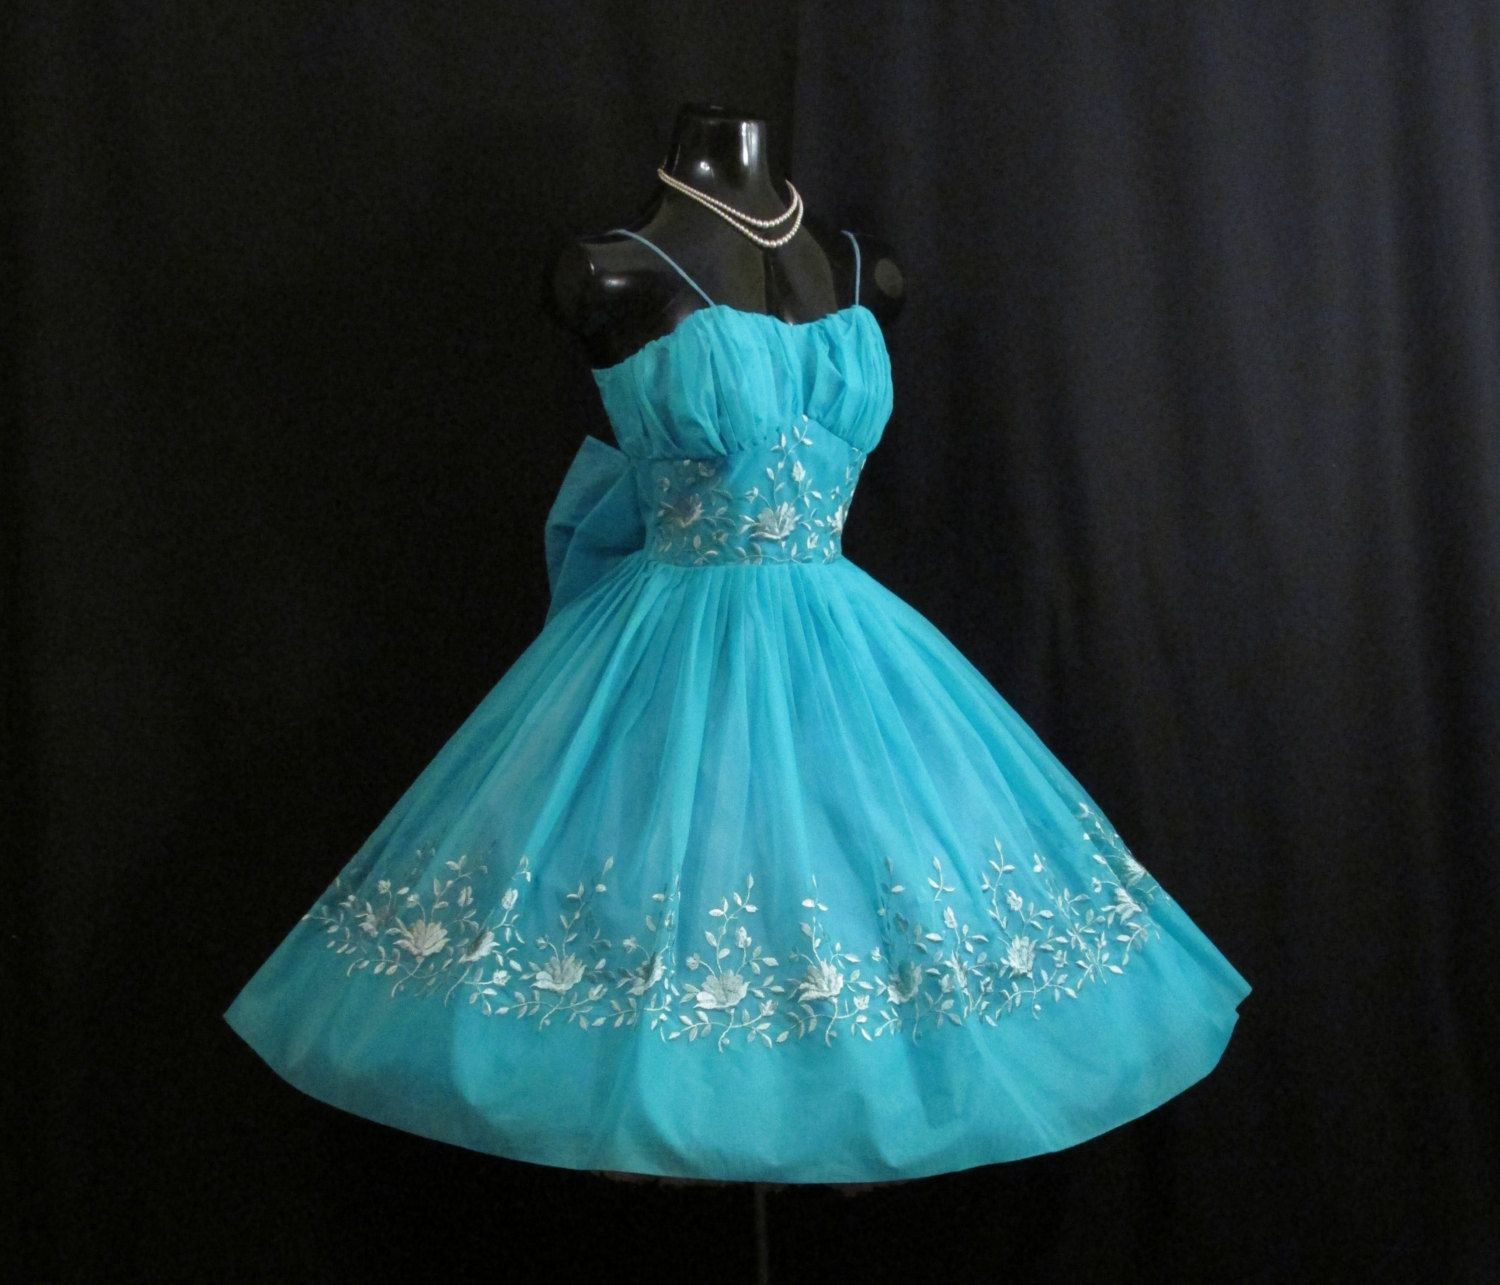 Vintage 1950S 50S Turquoise Blue Embroidered Chiffon